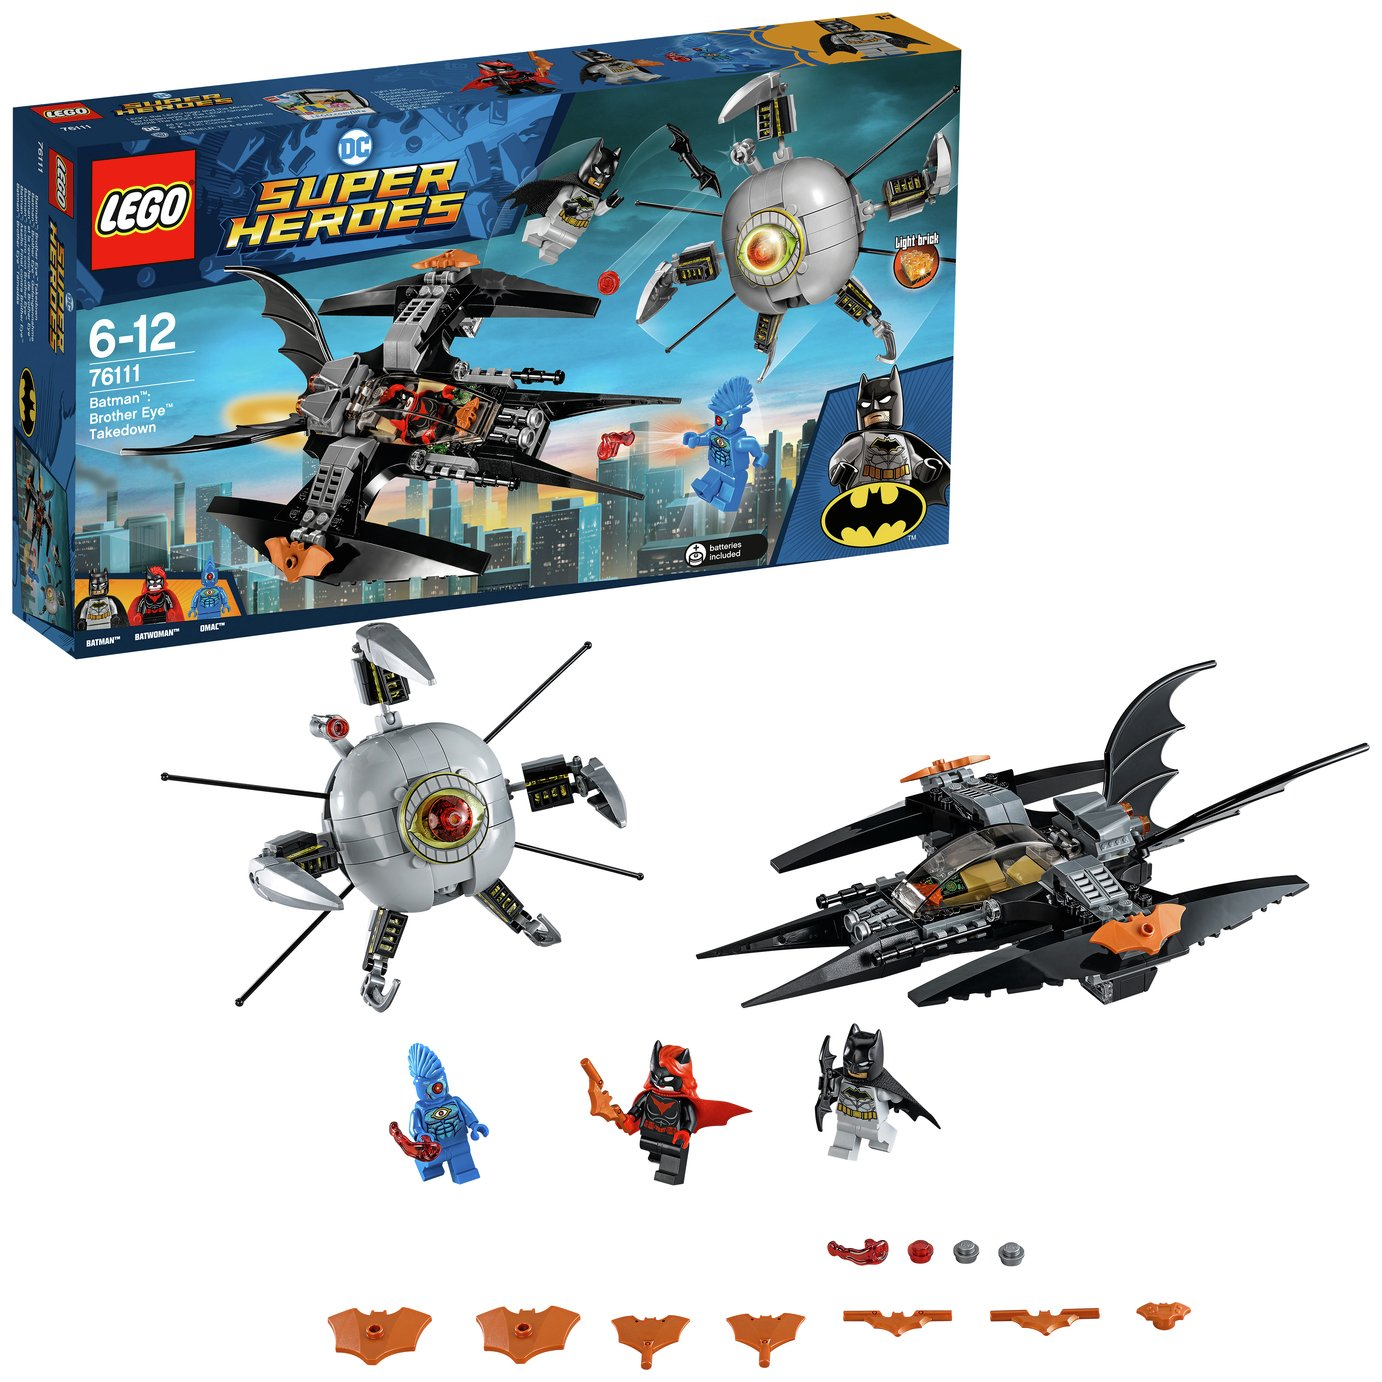 LEGO Super Heroes Batman Brother Eye Takedown - 76111